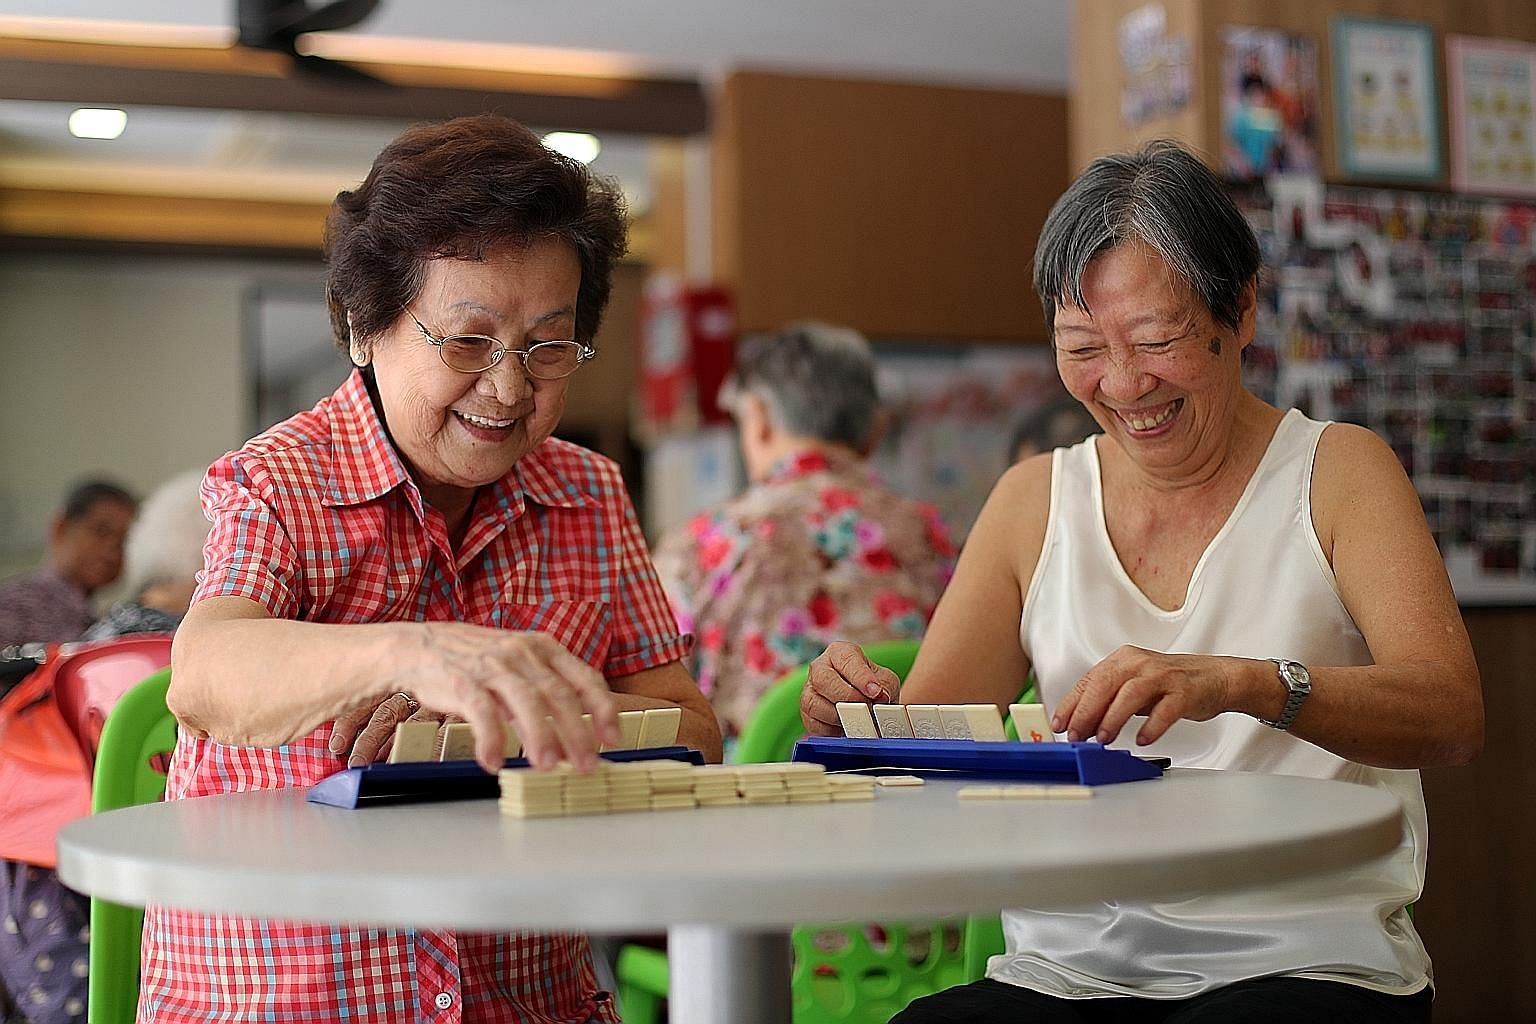 Madam Tsang Sow Kuen (in red) and Madam Tan Lu See having a game of Rummikub at the Wellness Kampung Senior Activity Centre on Thursday. For the two seniors, making their last wishes known - so their children know what to do when the time comes - is